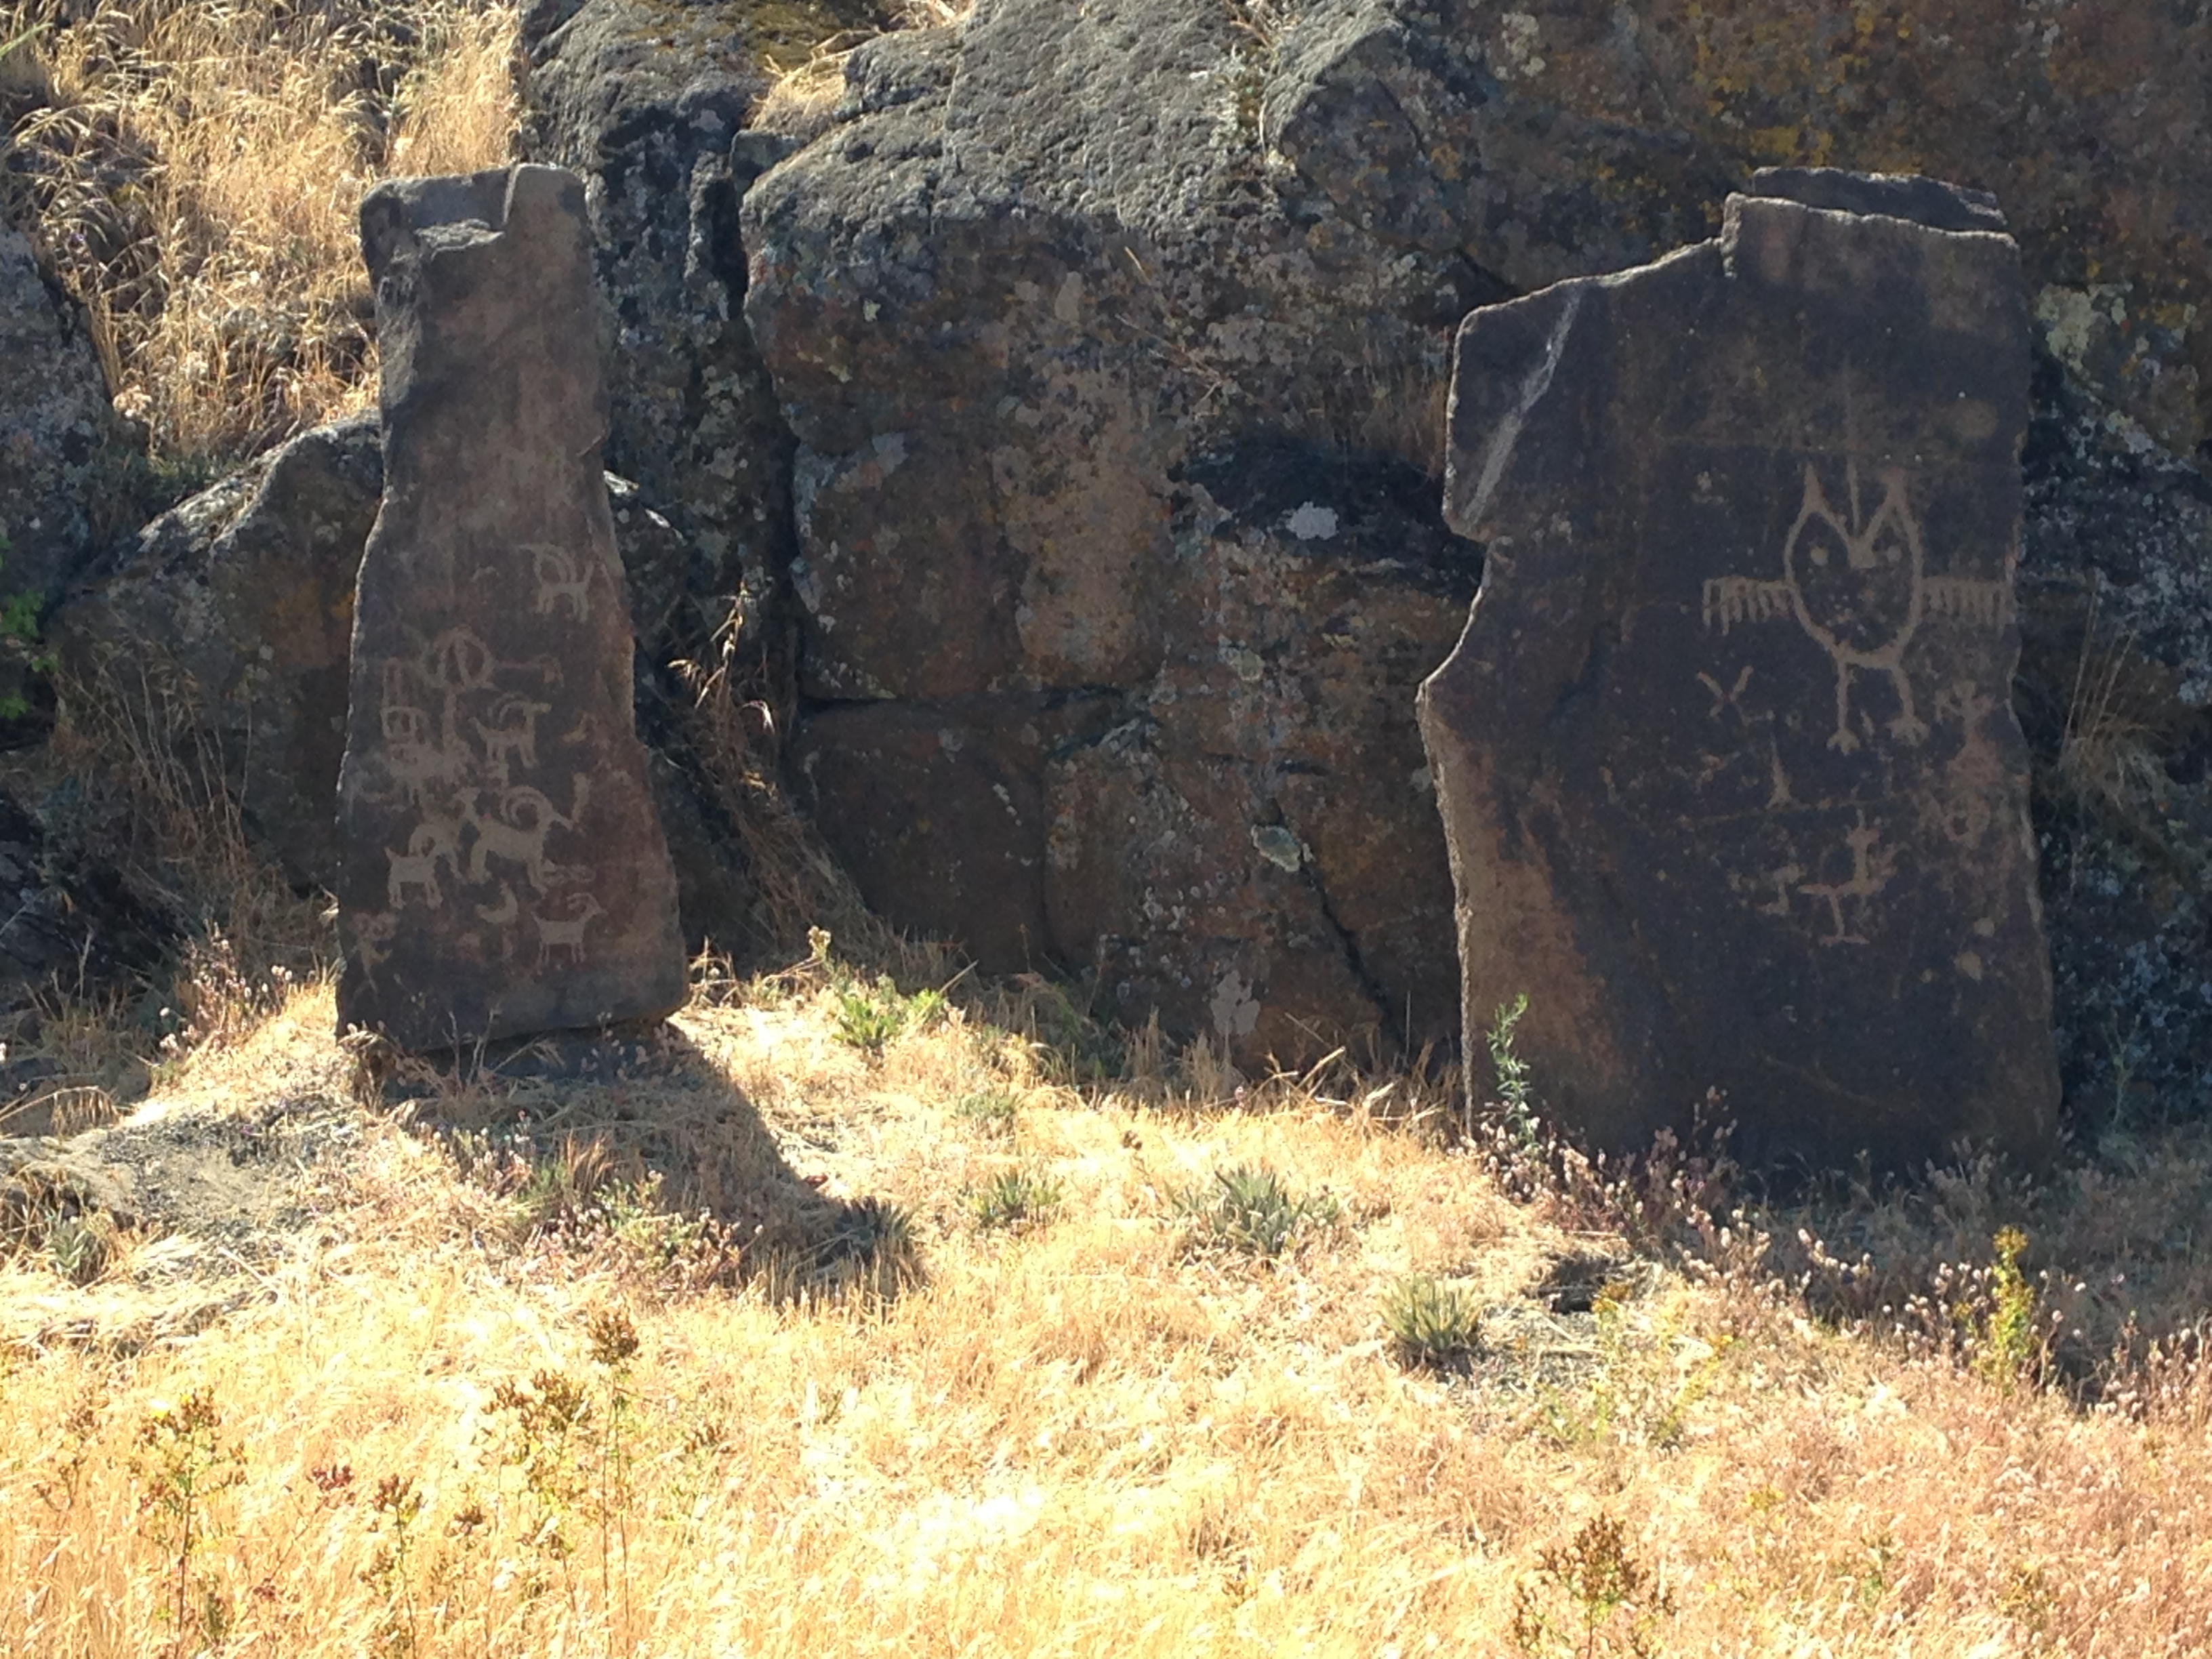 Petroglyphs near Horsethief Lake, on the Columbia River, Southern border of Washington St. and Oregon